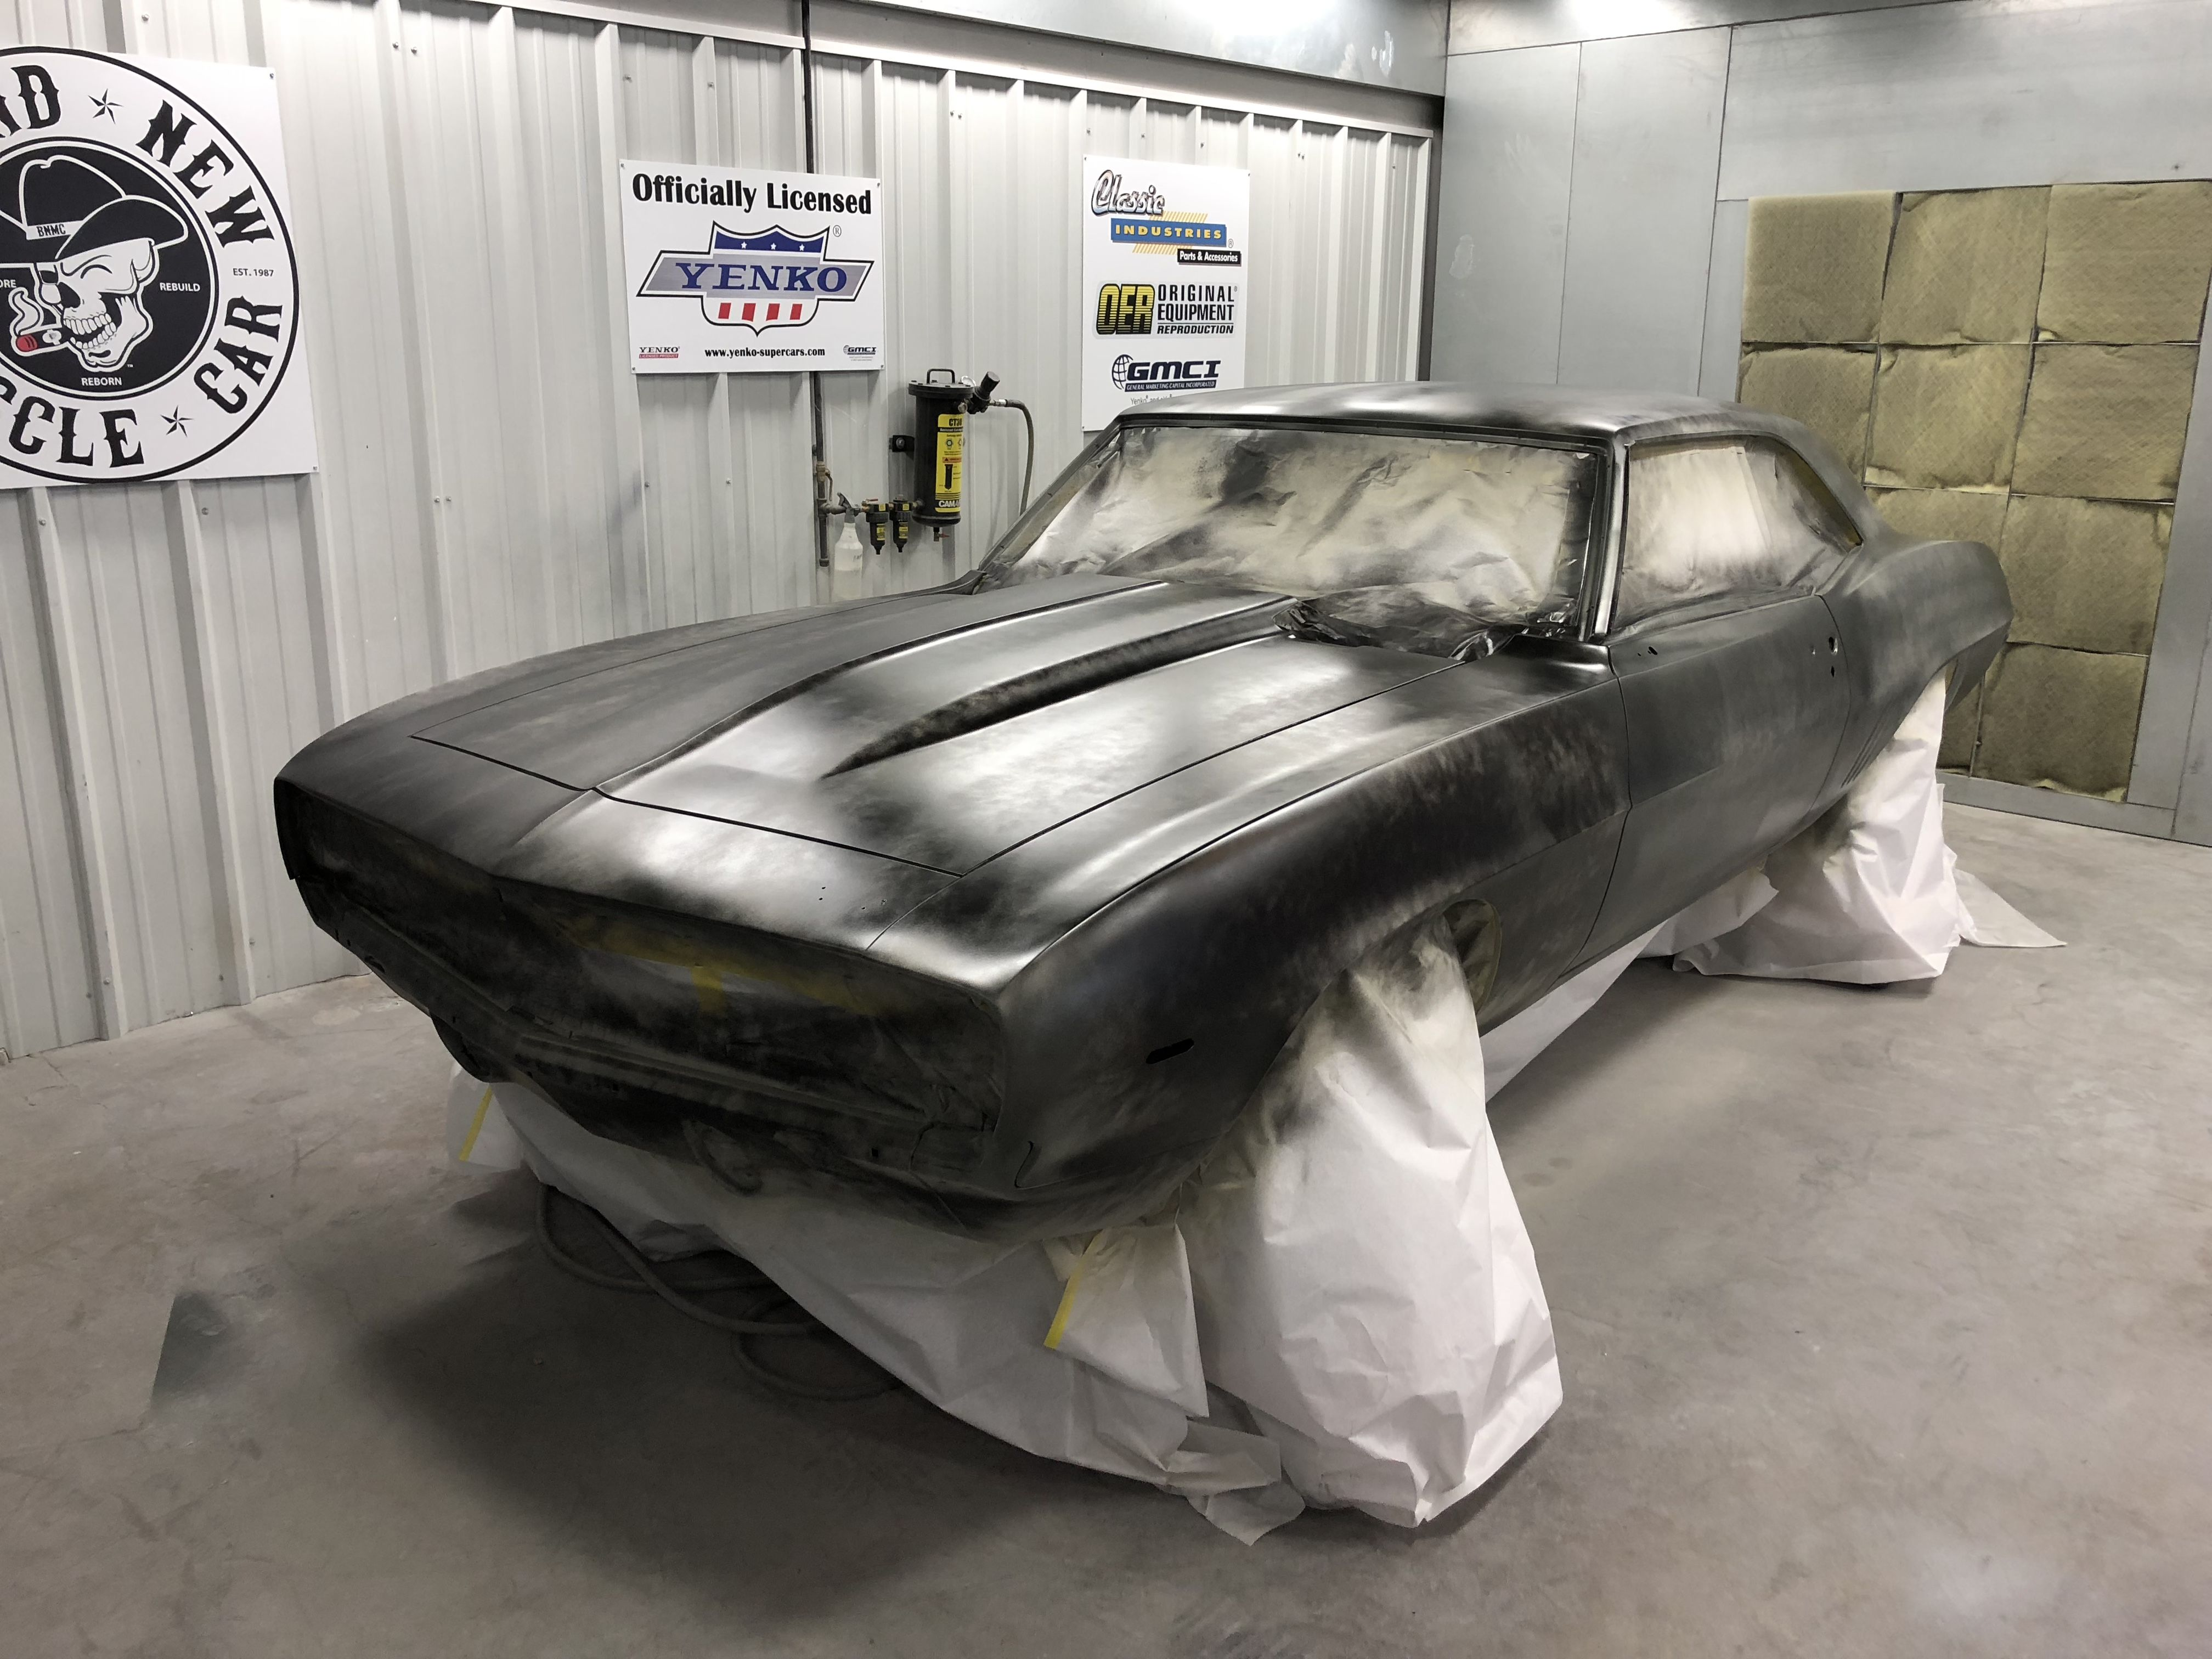 Shoot 2 Day 3 rocked! sYc-001 is in primer. nd New Muscle Car ... on supercar show, supercar concept cars, supercar brands, supercar art, supercar design, supercar kit car, supercar wallpaper, supercar garage, supercar photography, supercar lineup,